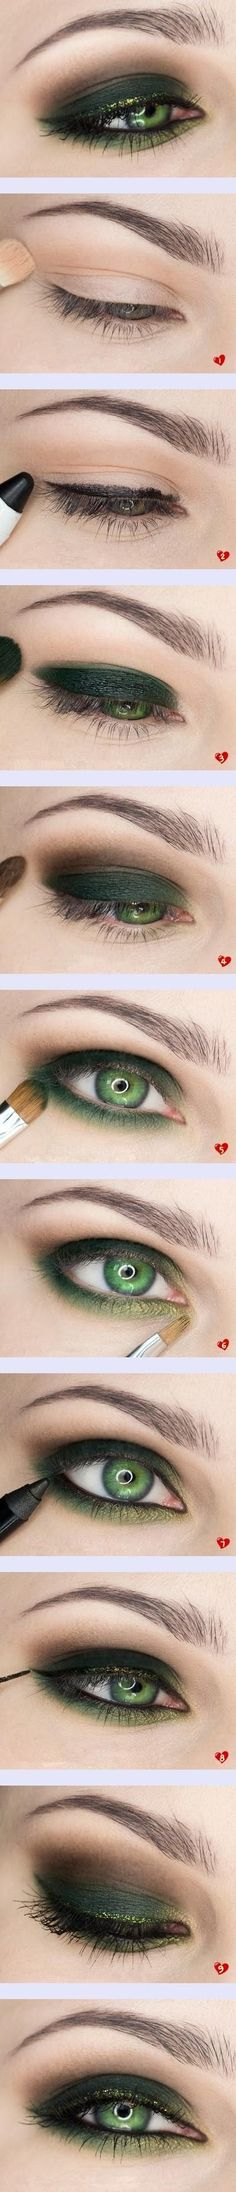 #green #eyes #makeup